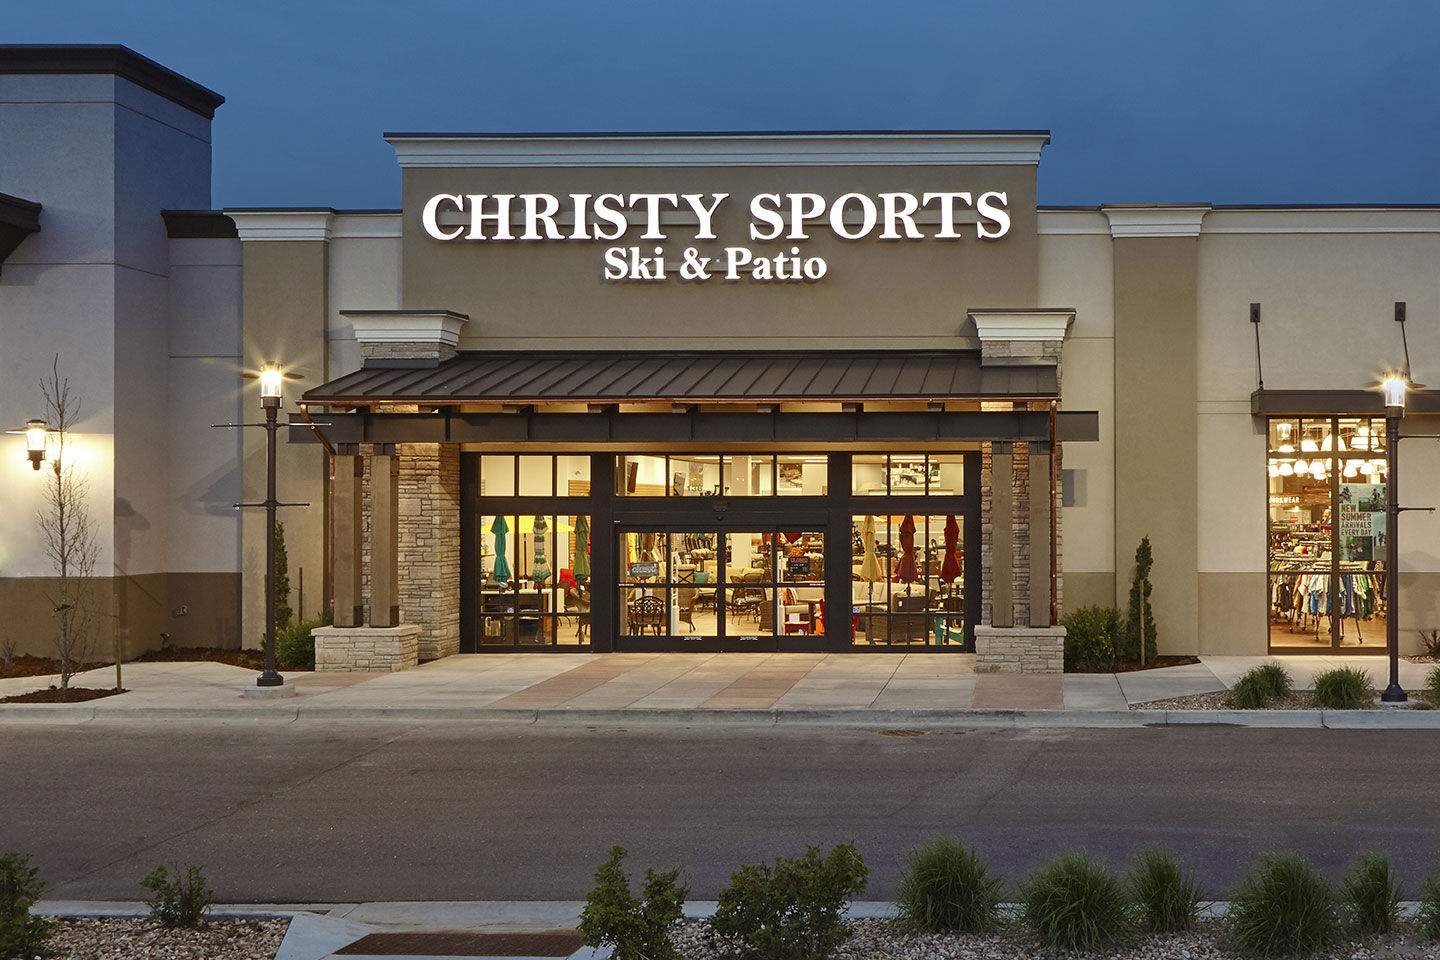 christy sports ski and snowboard rental location in fort collins